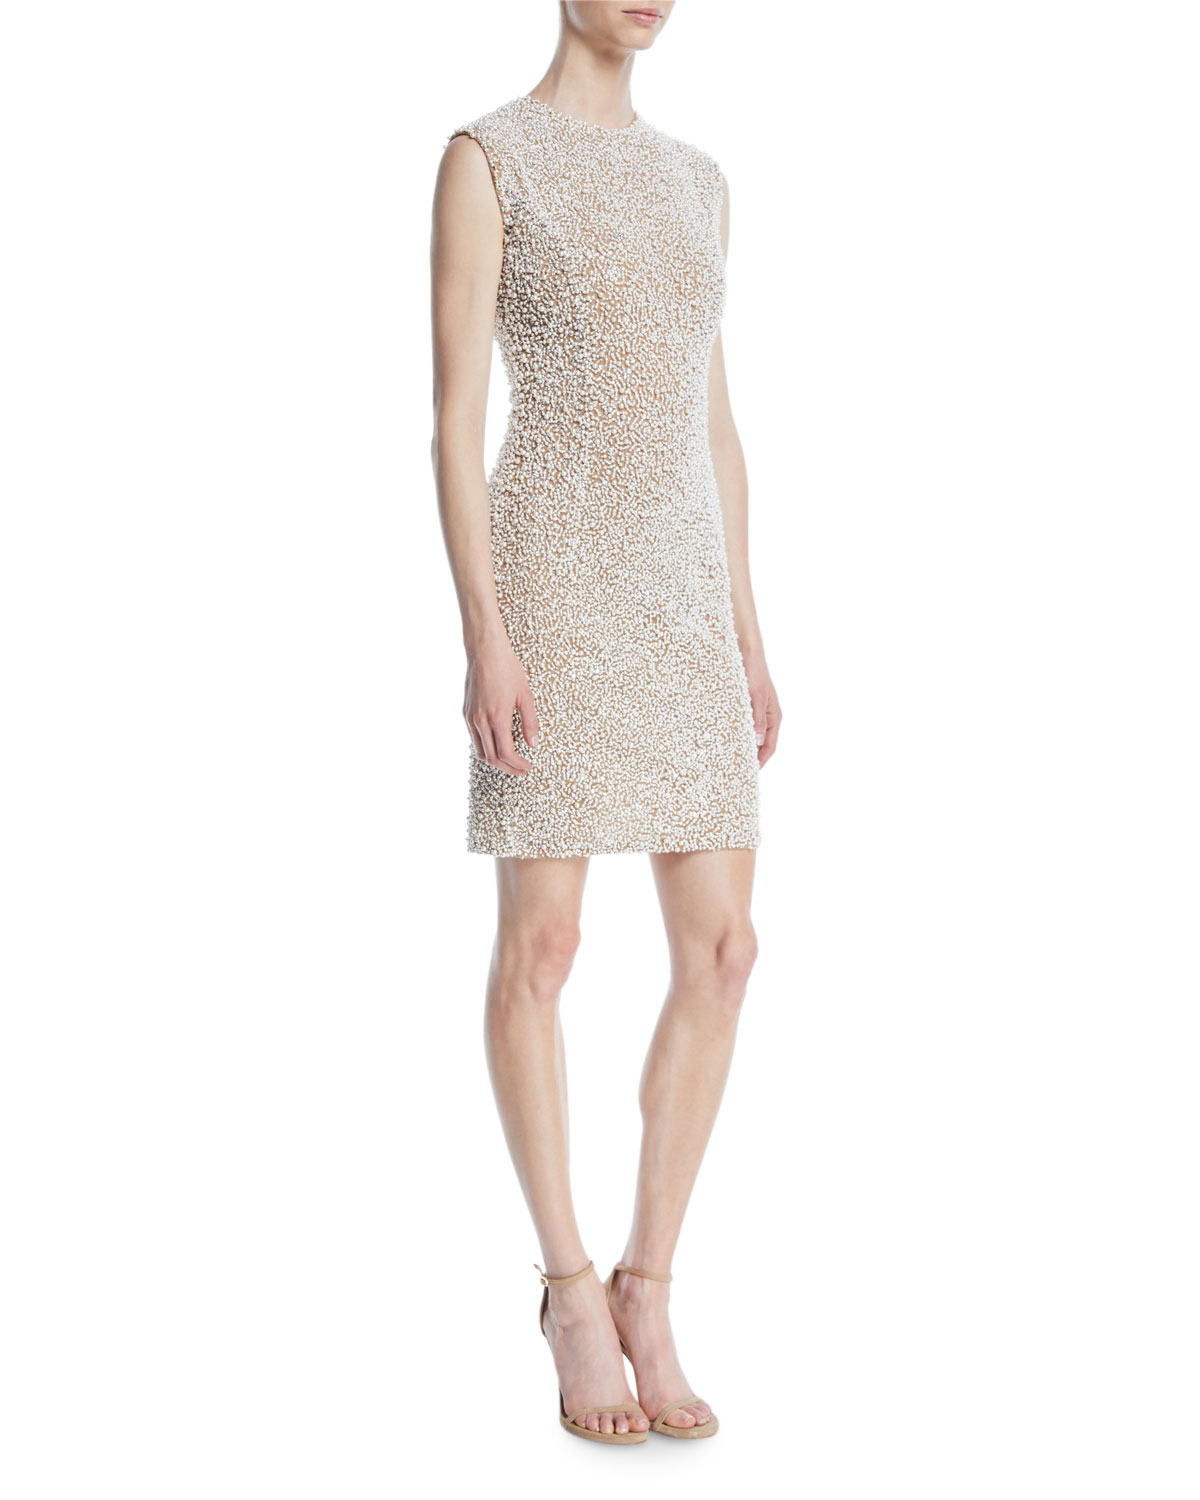 292219fb1a79 Michael Kors Collection Sleeveless Stretch-Tulle Crystal-Embroidered  Cocktail Dress